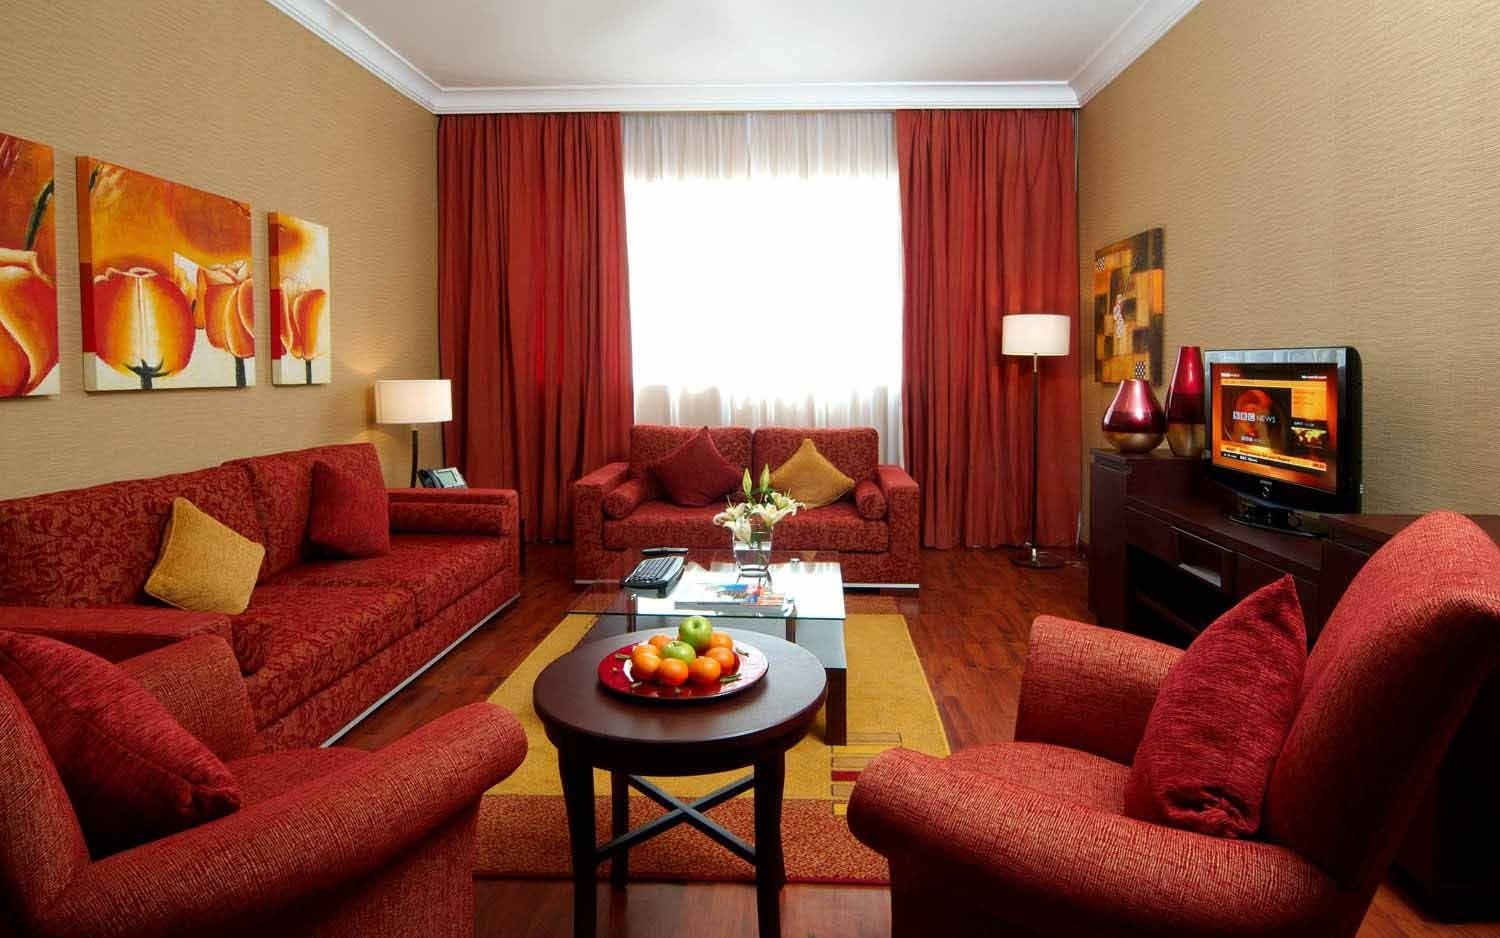 10 Best Red And Brown Living Room Ideas living room classy brown and red color for living room with red 2020